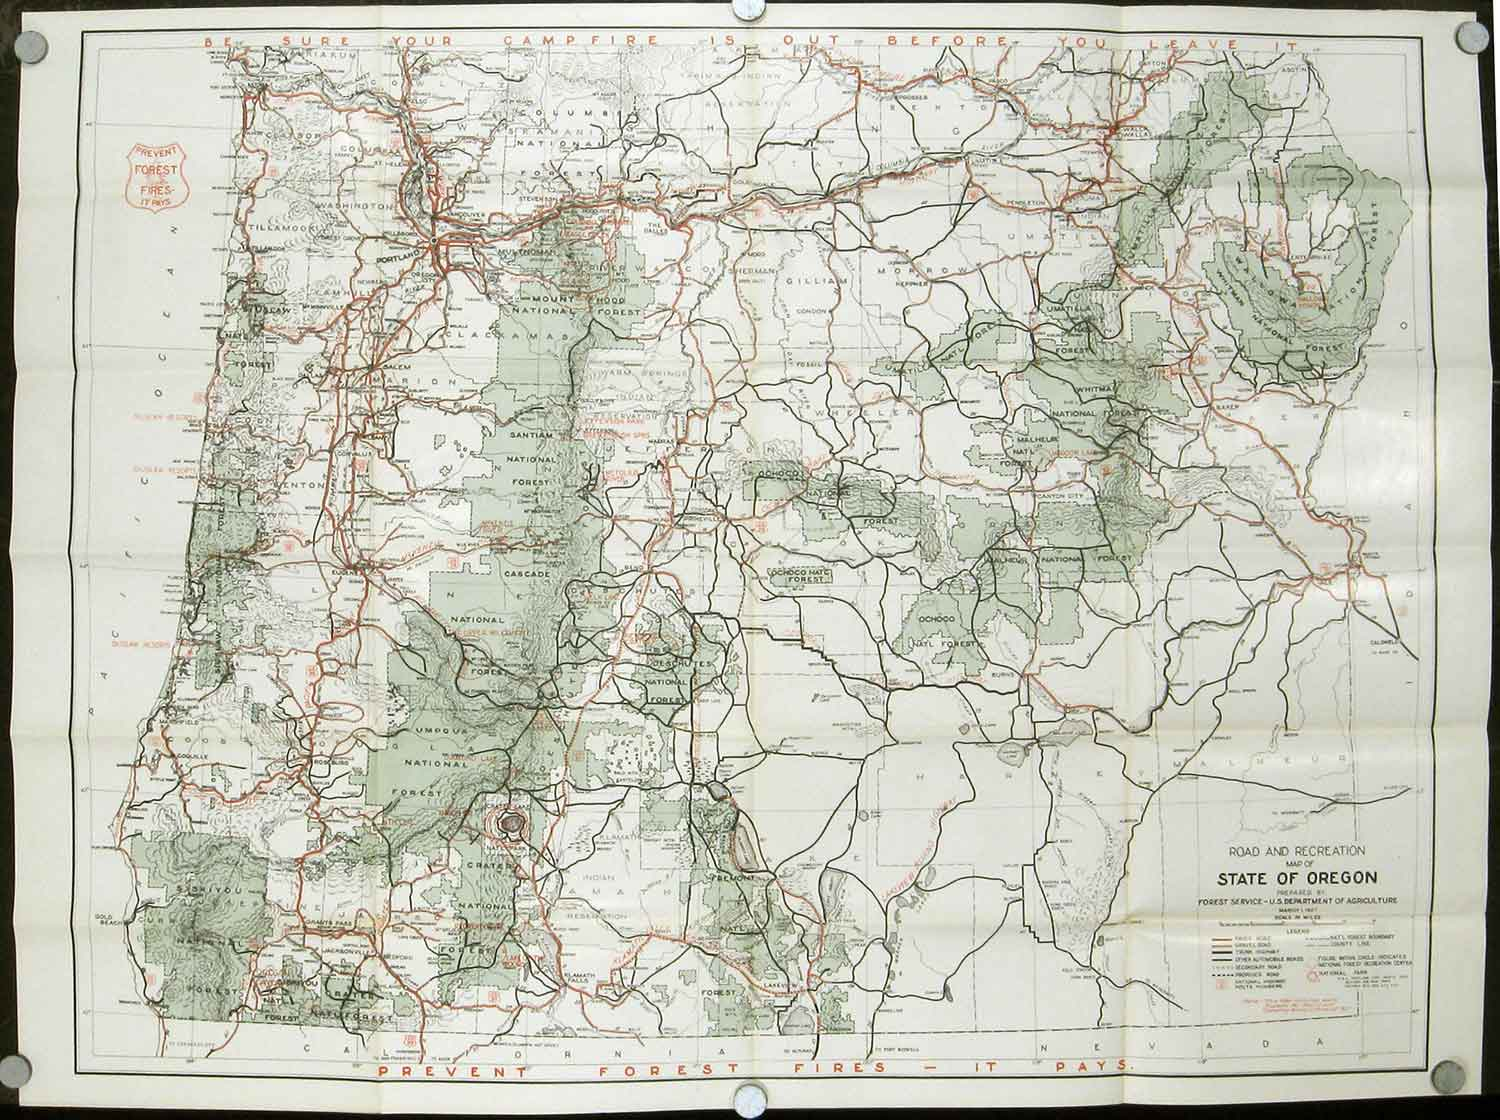 Road And Information Map For The National Forests Of Oregon US - Us national forests on a map